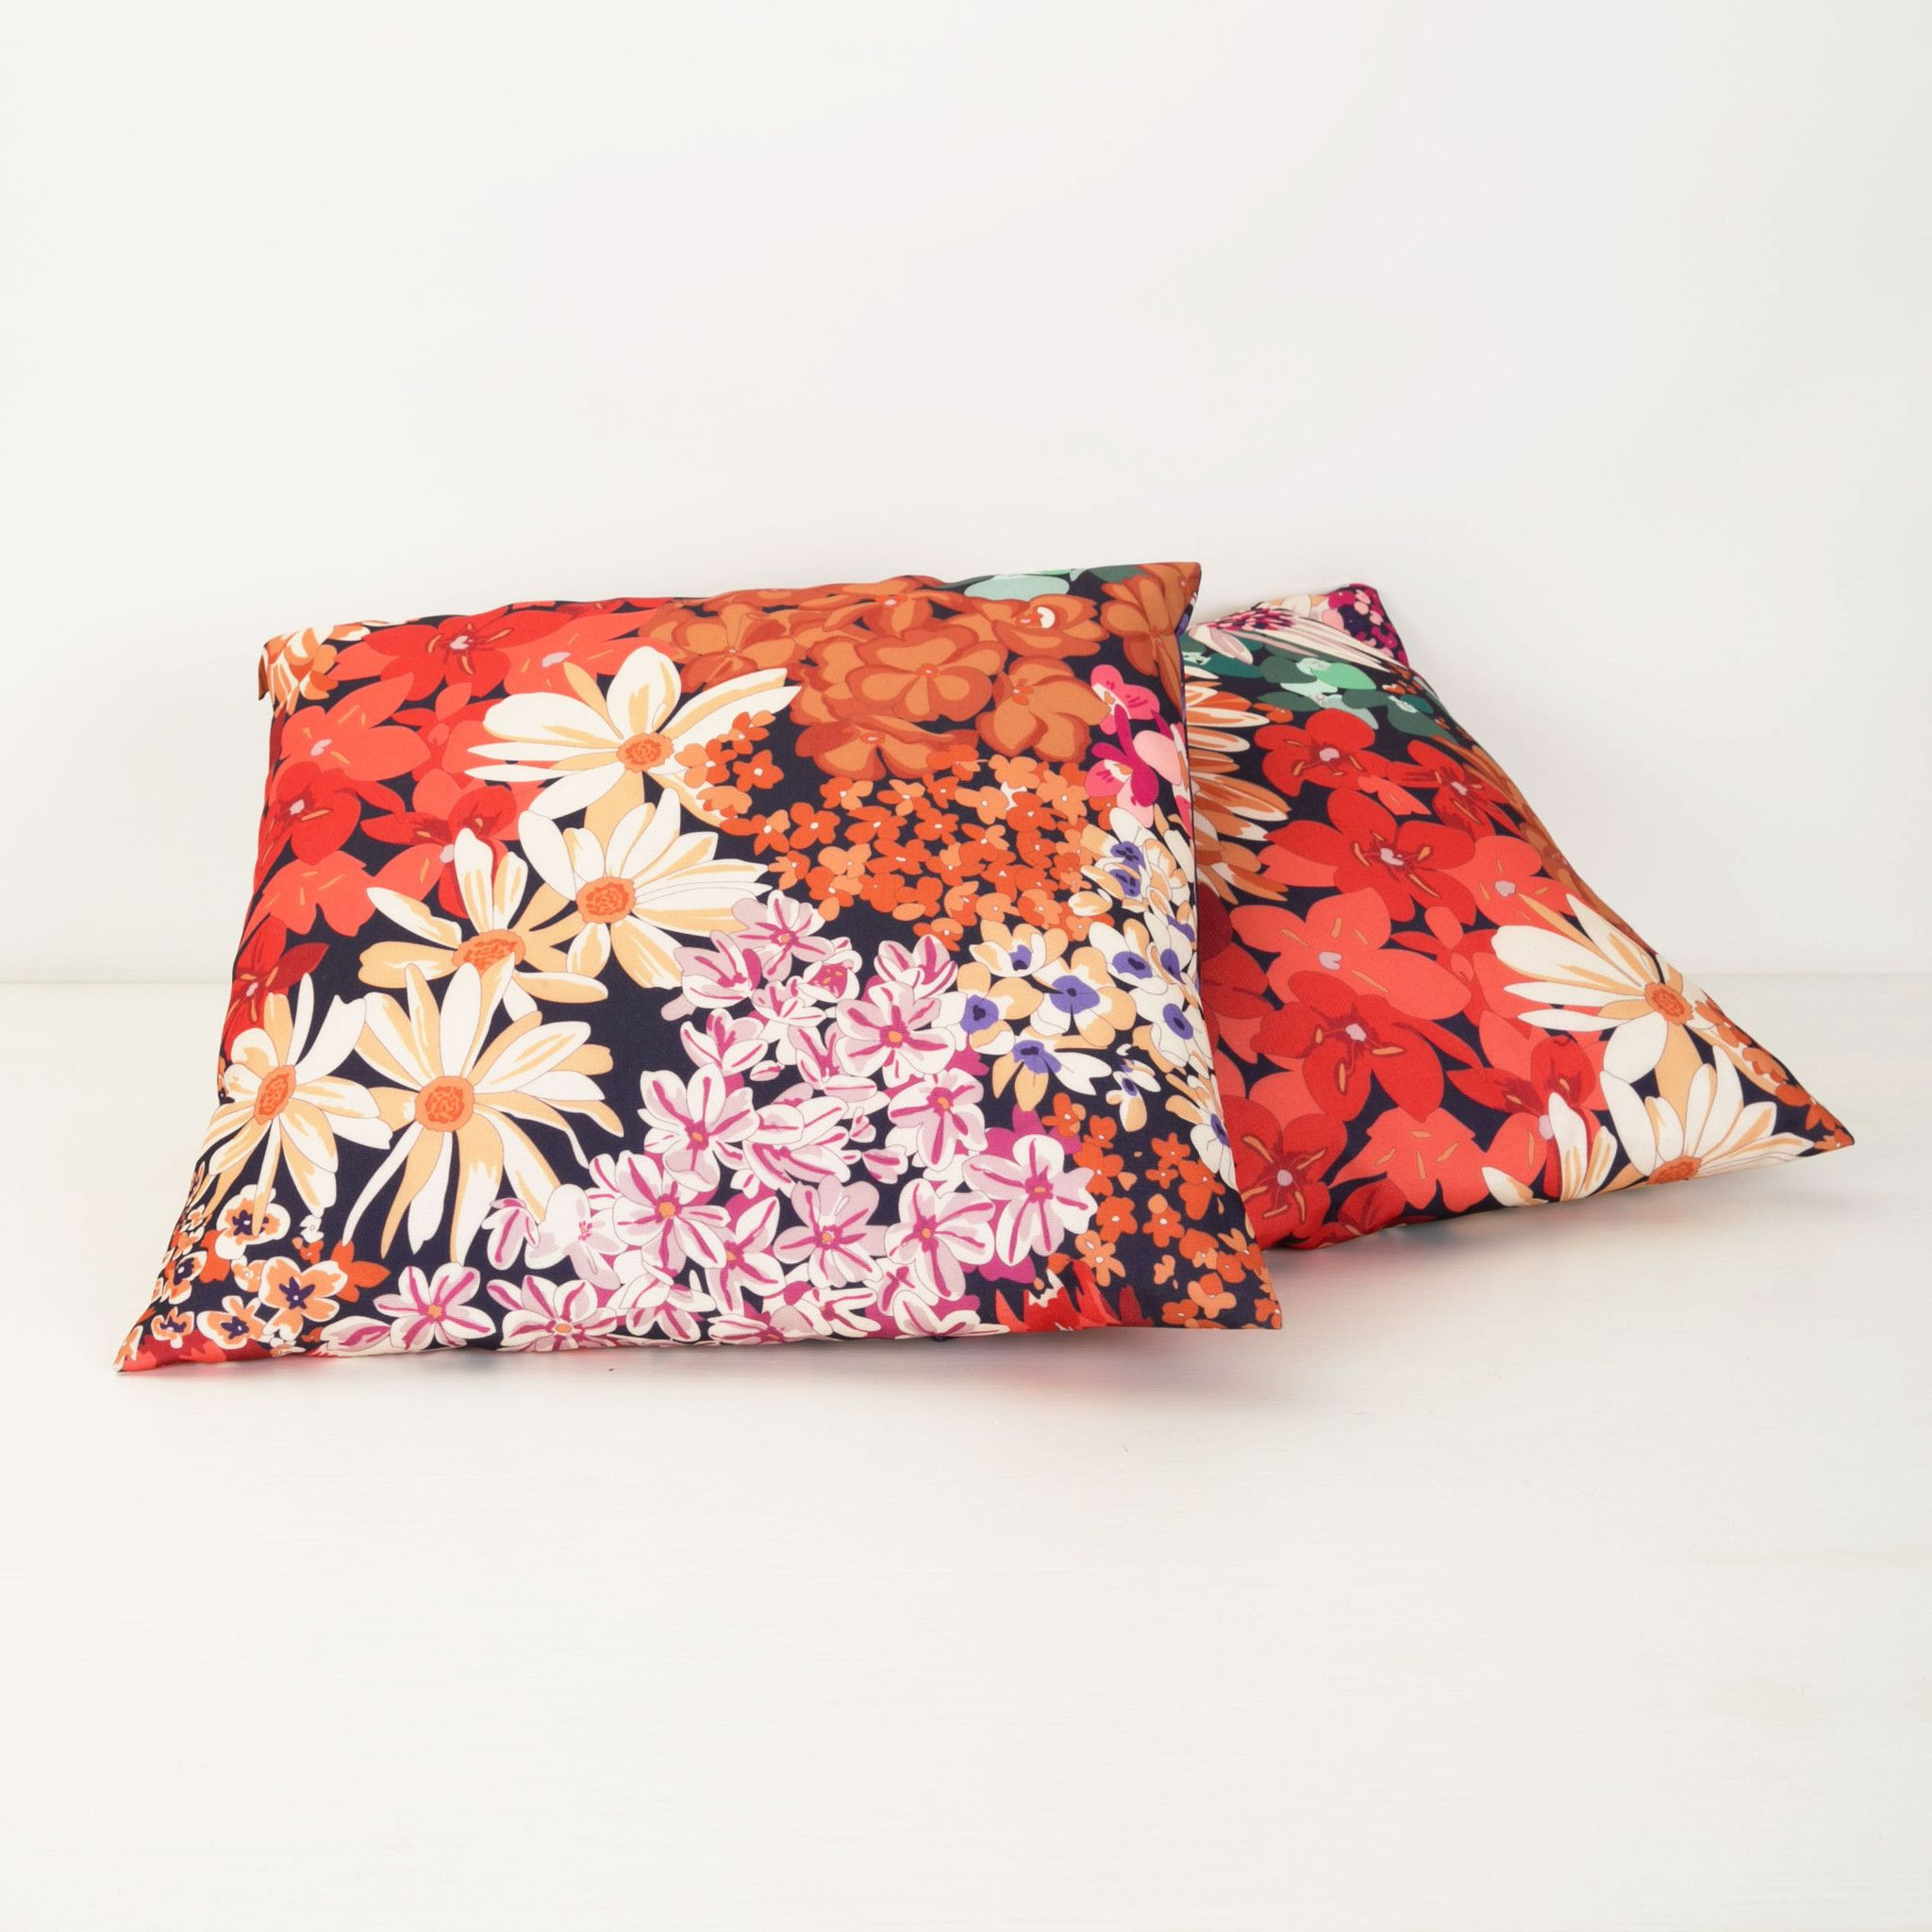 alexandra griffiths pillow upholstery homeware cushions pillows accessories missoni